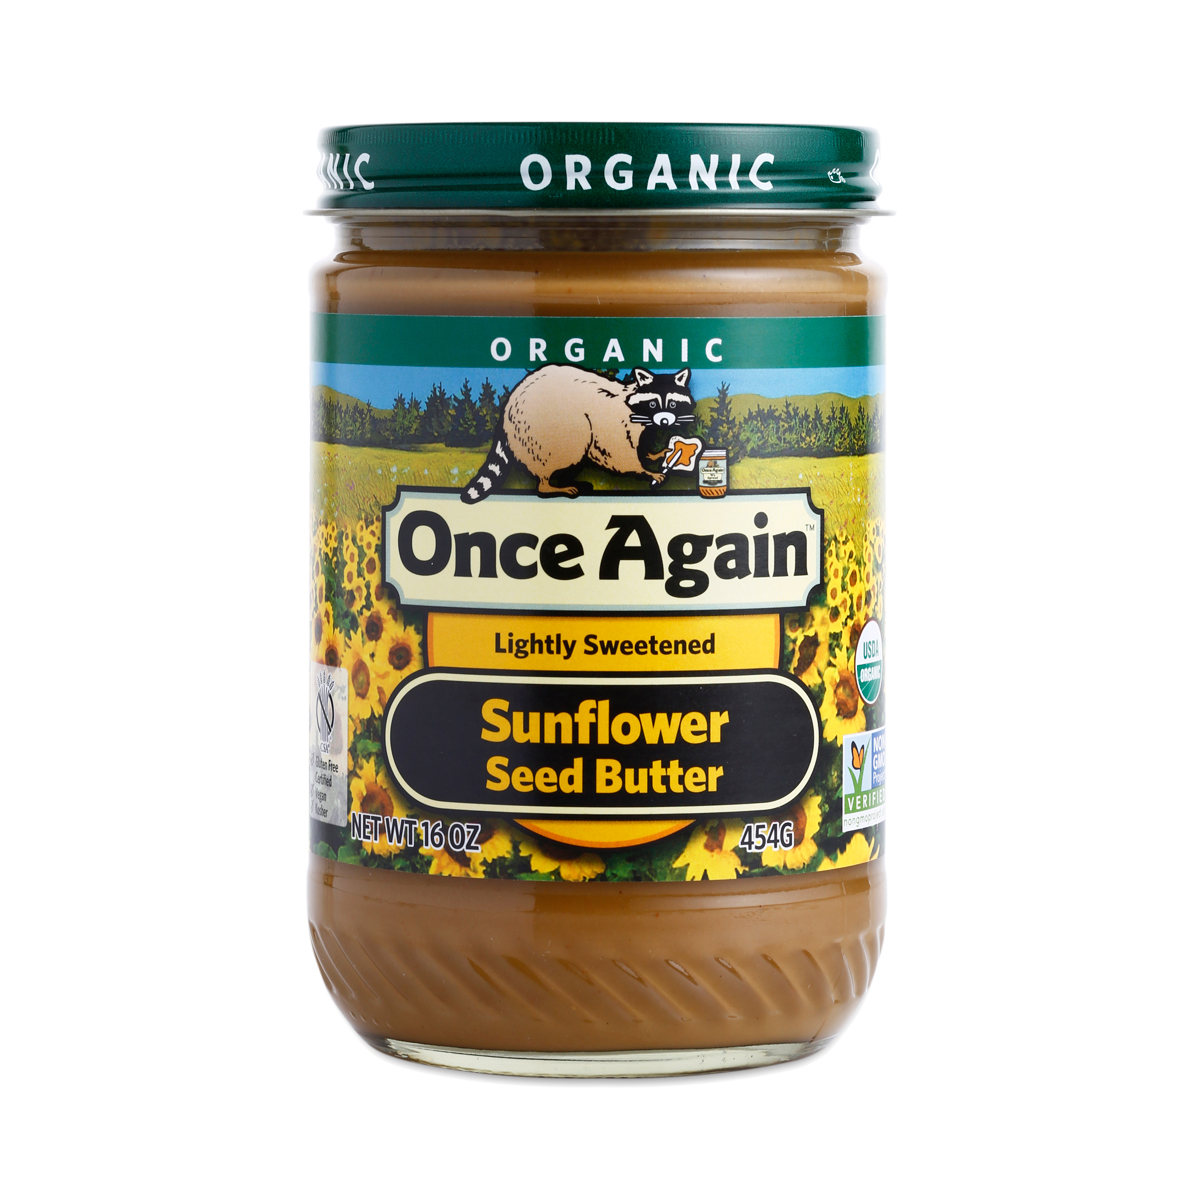 Once Again Sunflower Butter Smth ( 12x16 OZ)